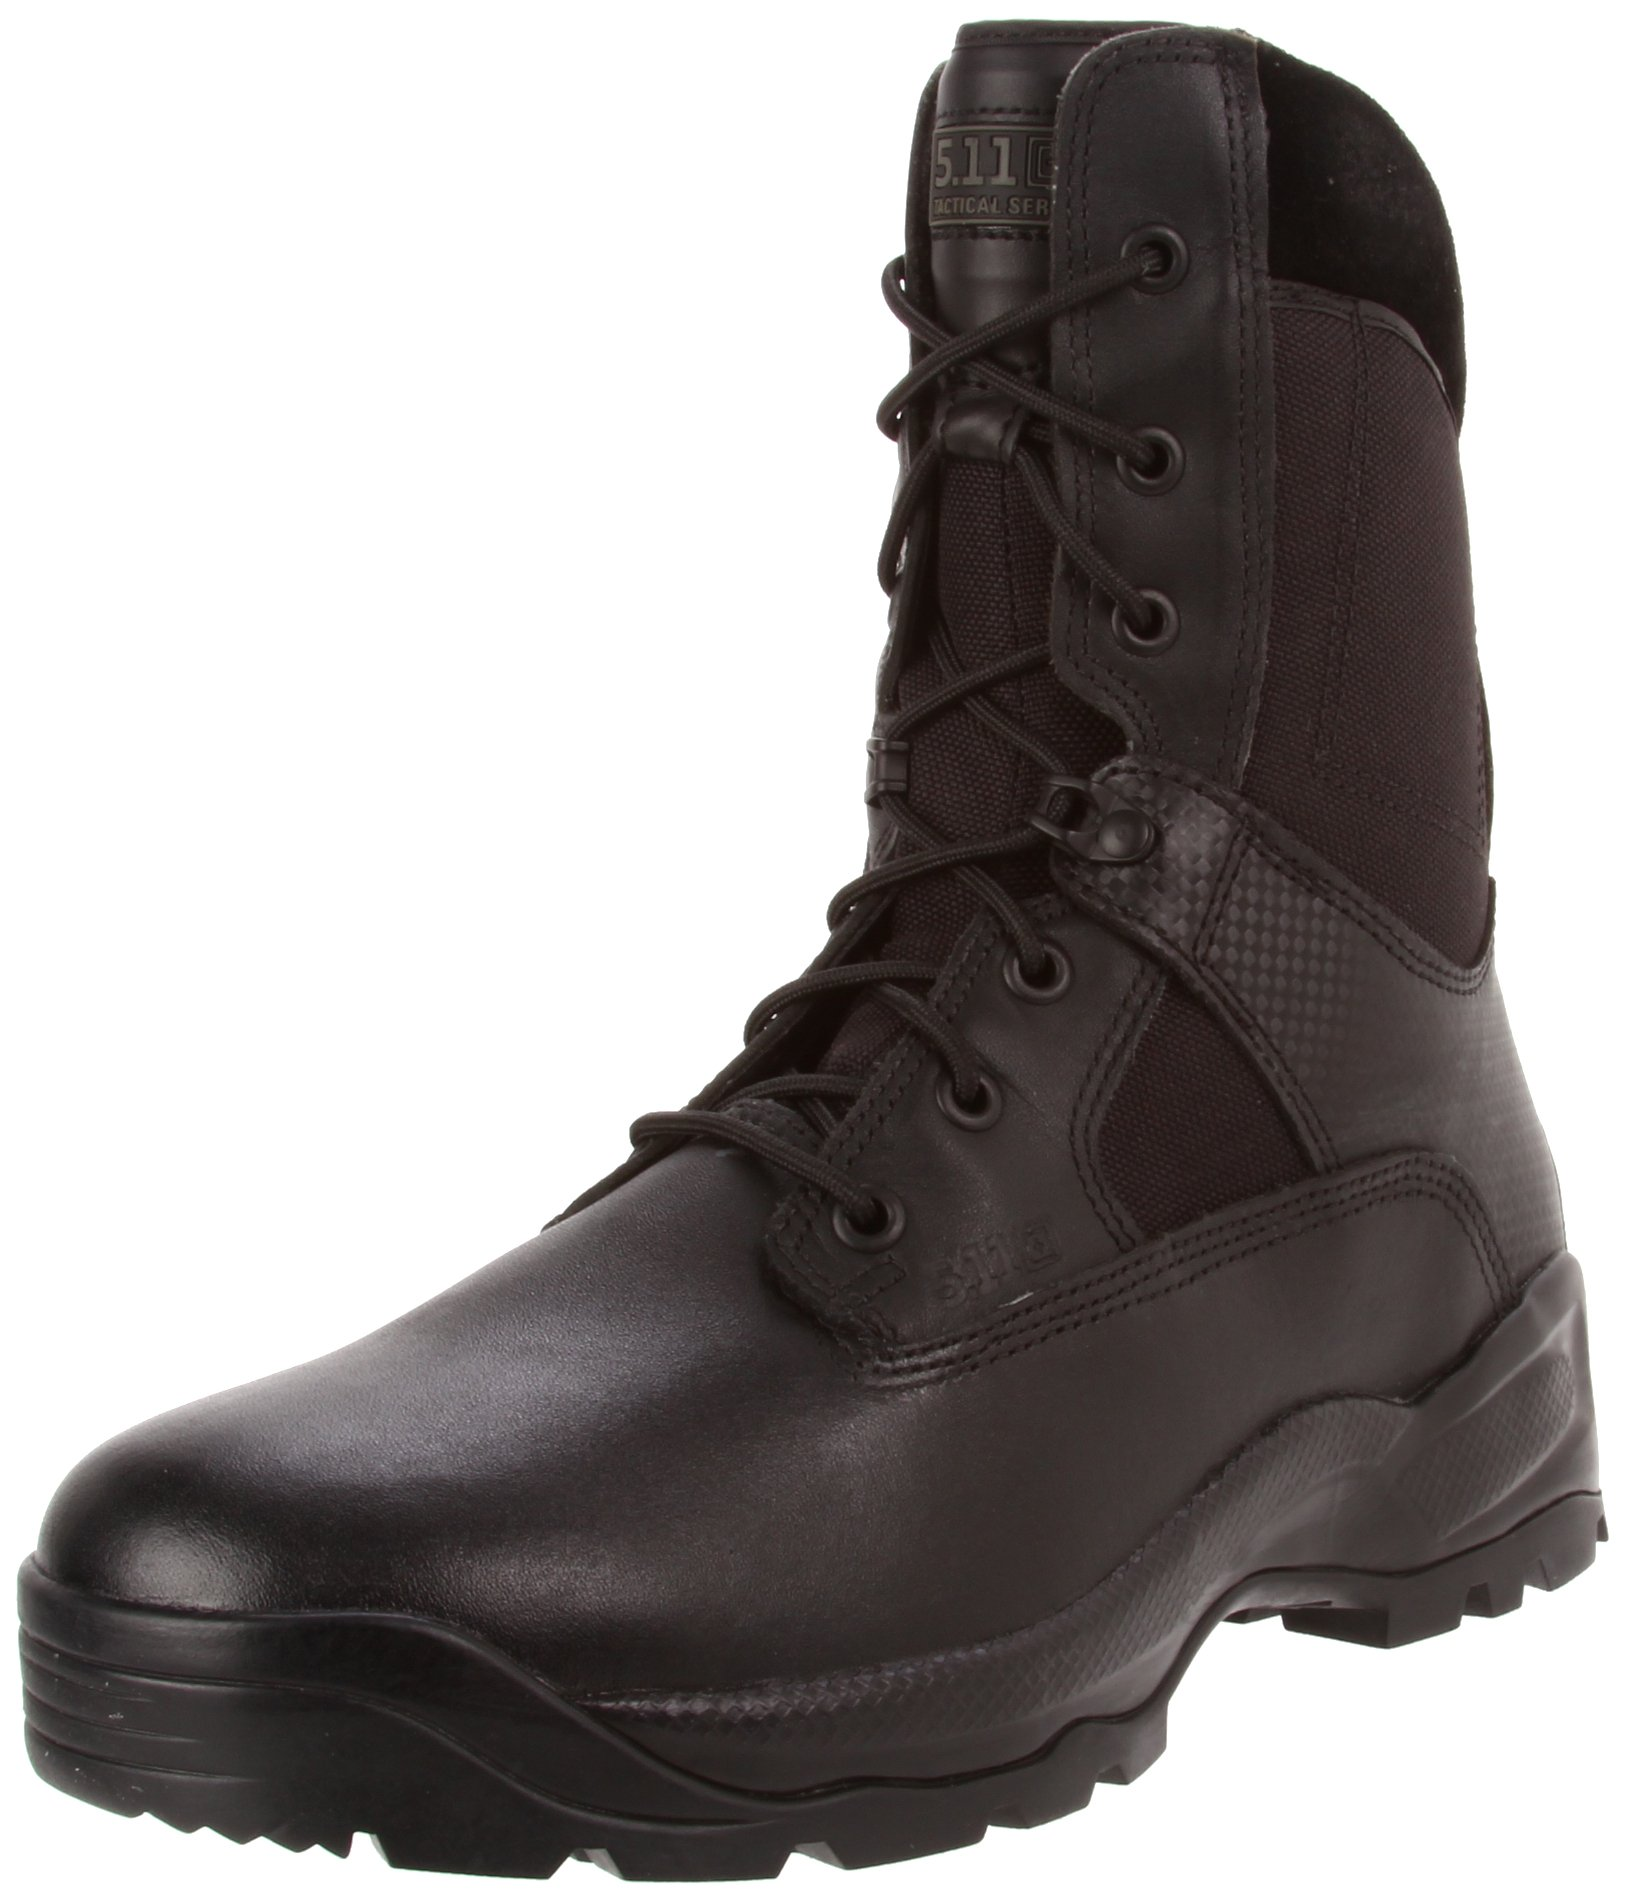 5.11 ATAC 8In Boot-U, Black, 15 D(M) US by 5.11